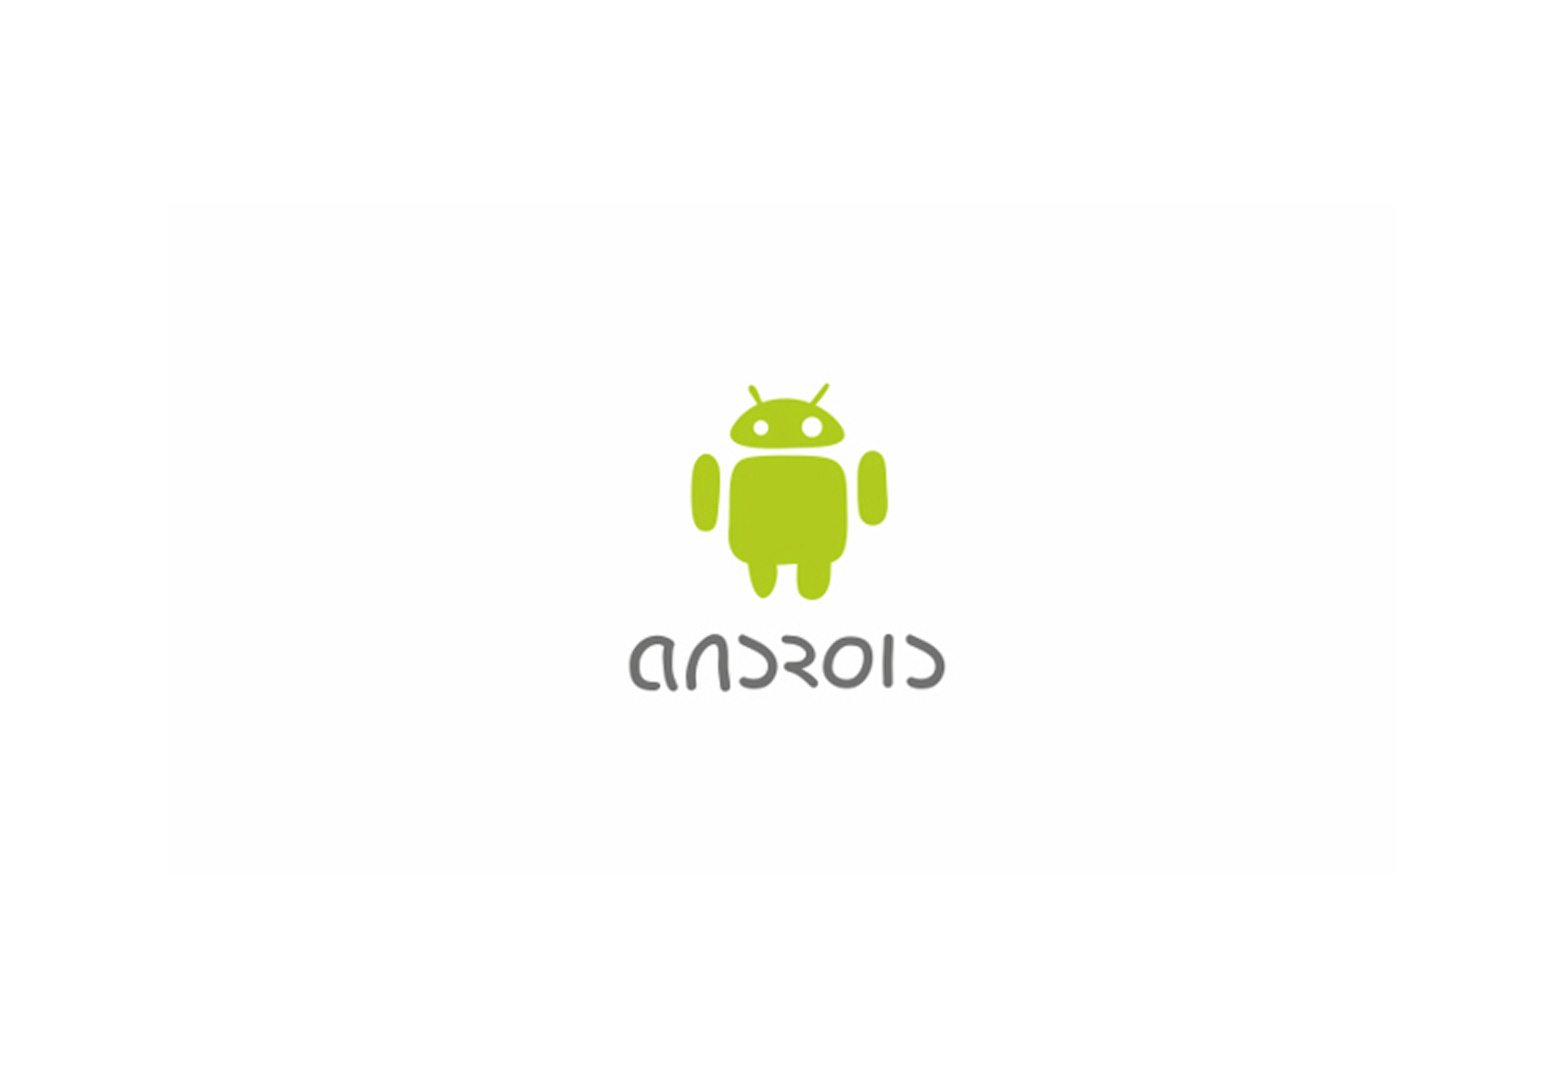 android-comic-sans-logo11